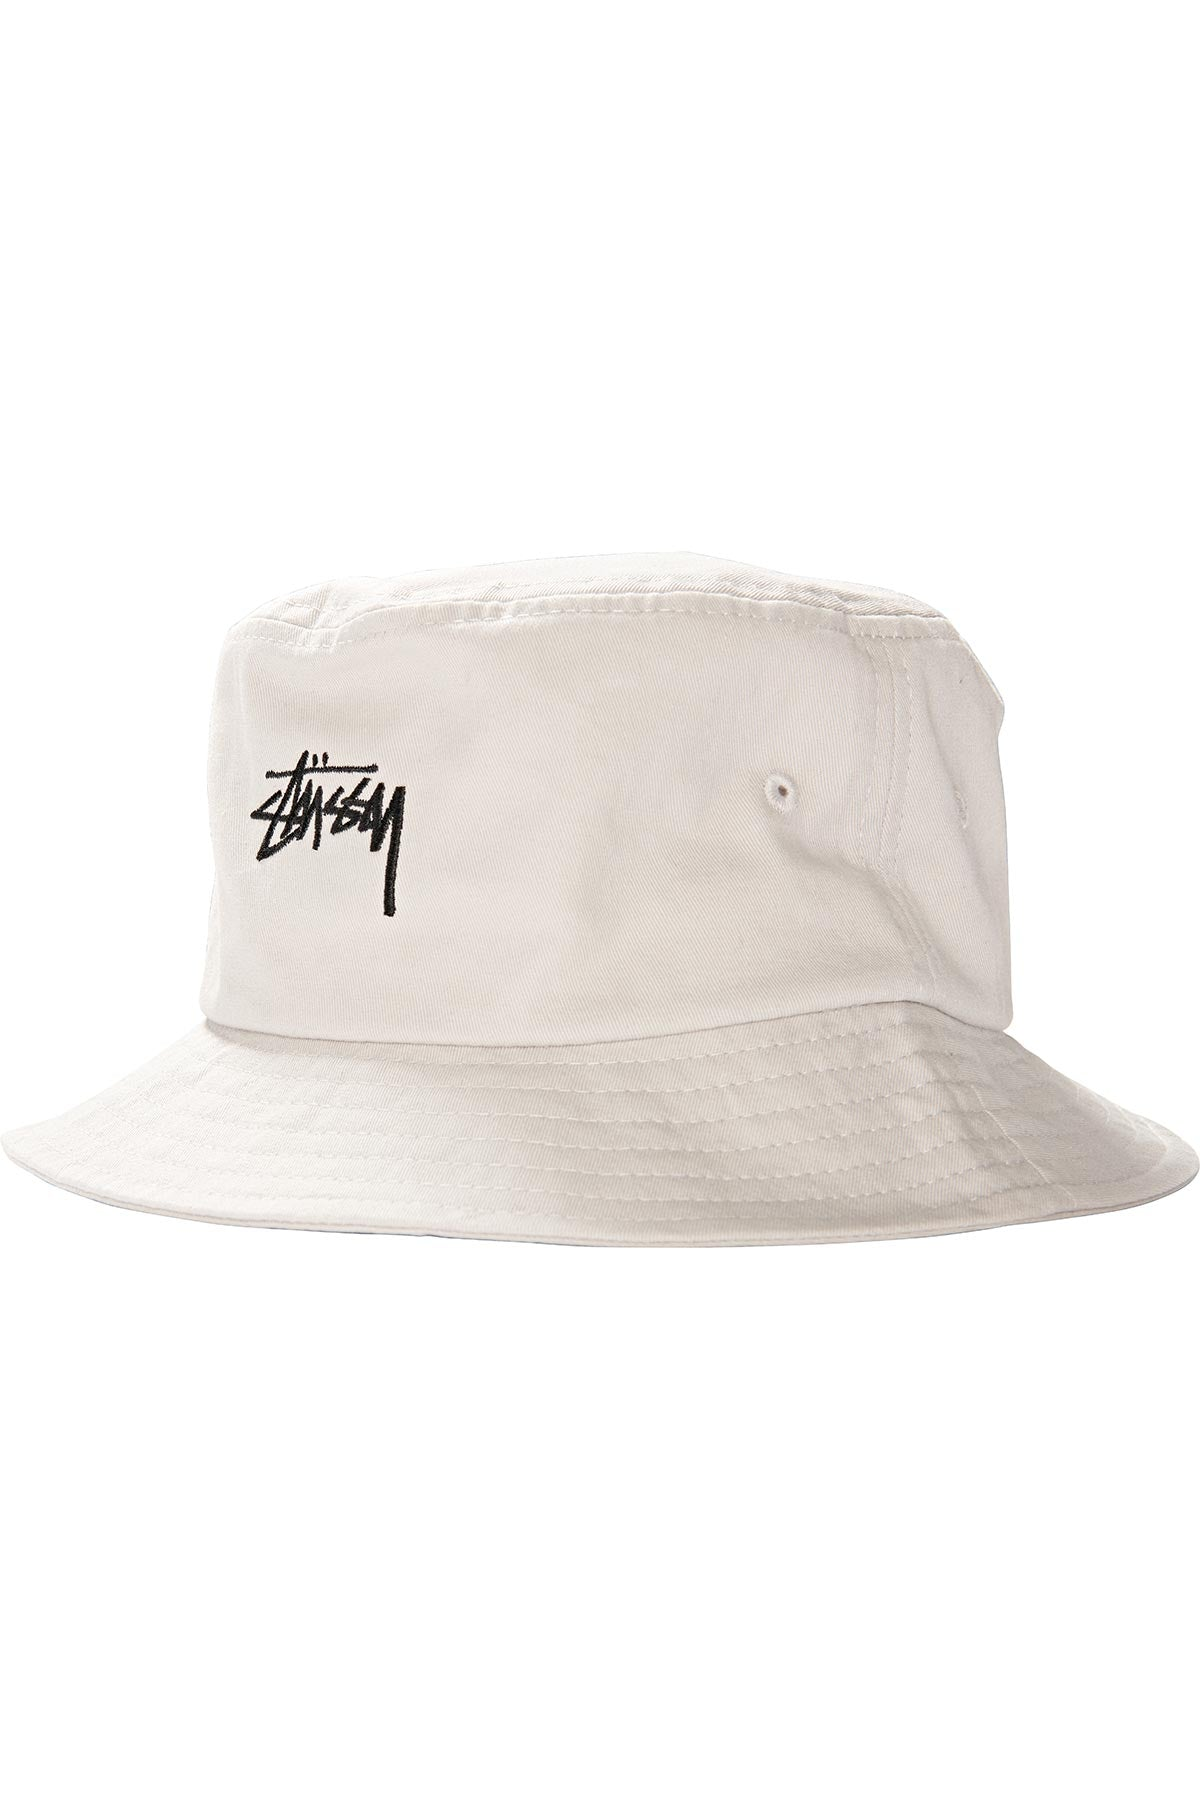 Stock Bucket Hat - R8gzwear